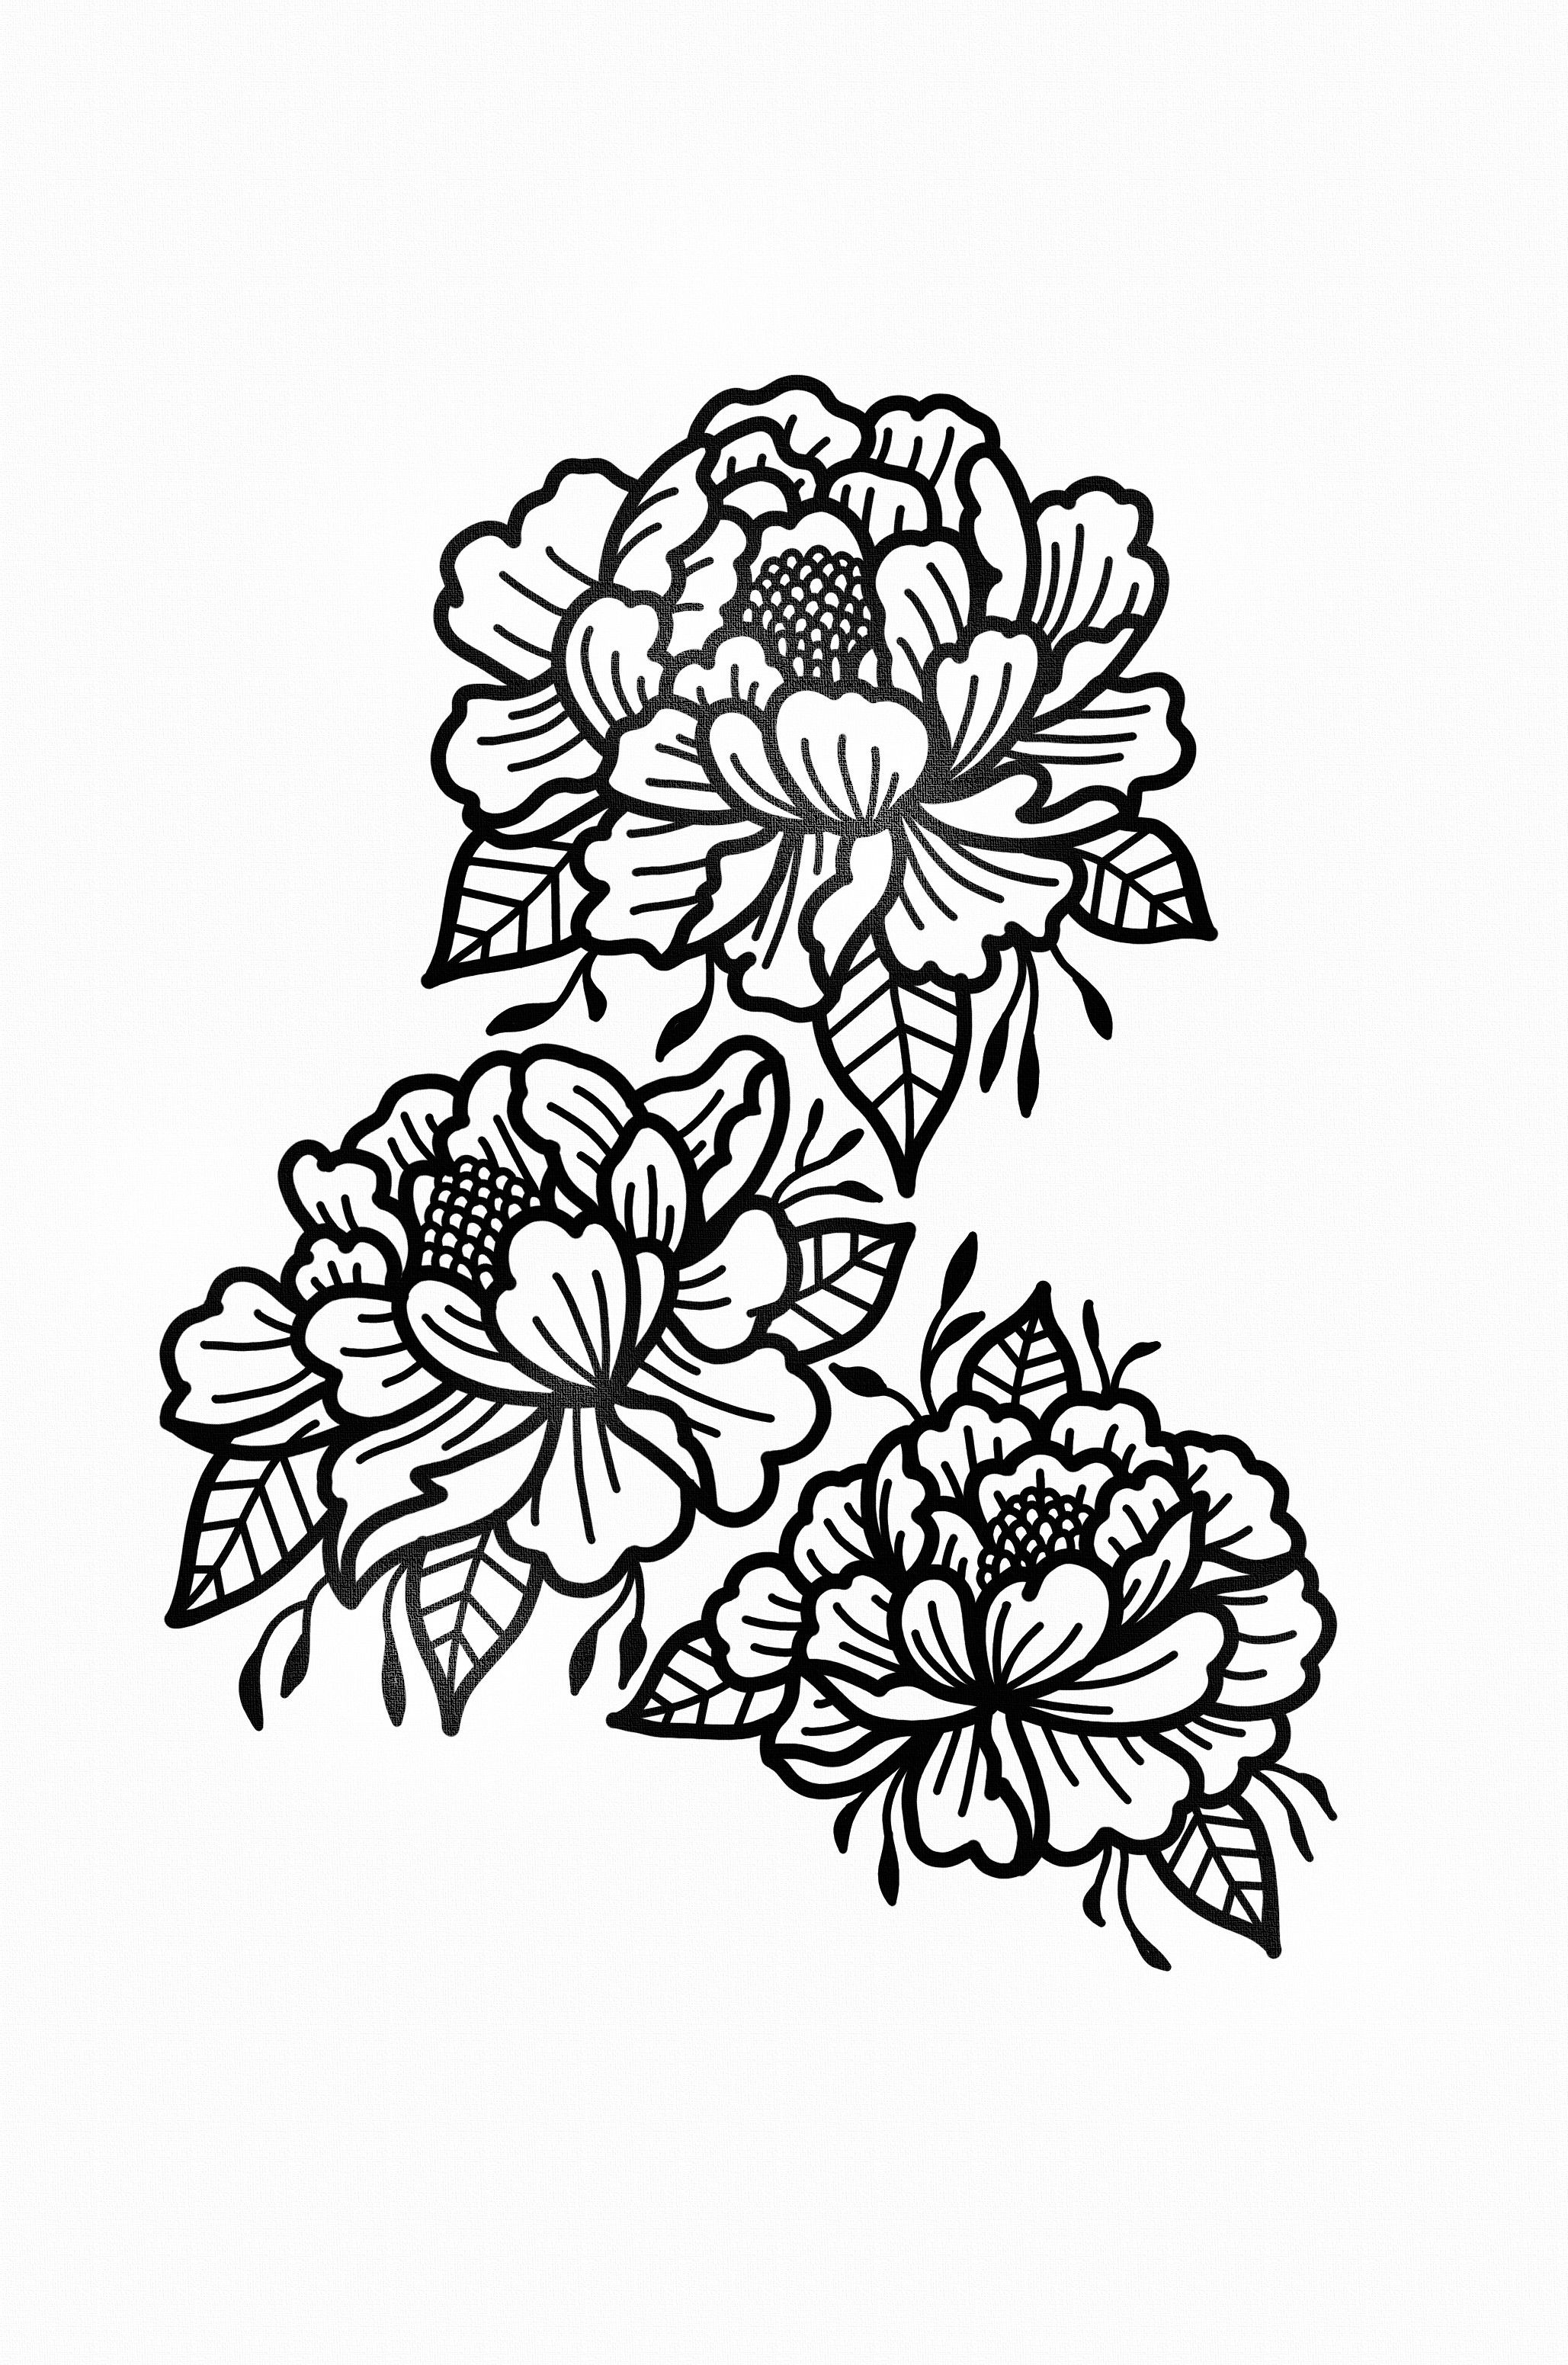 Stanley duke tattoo design flowers art tattooist graphic for Tattoo line work